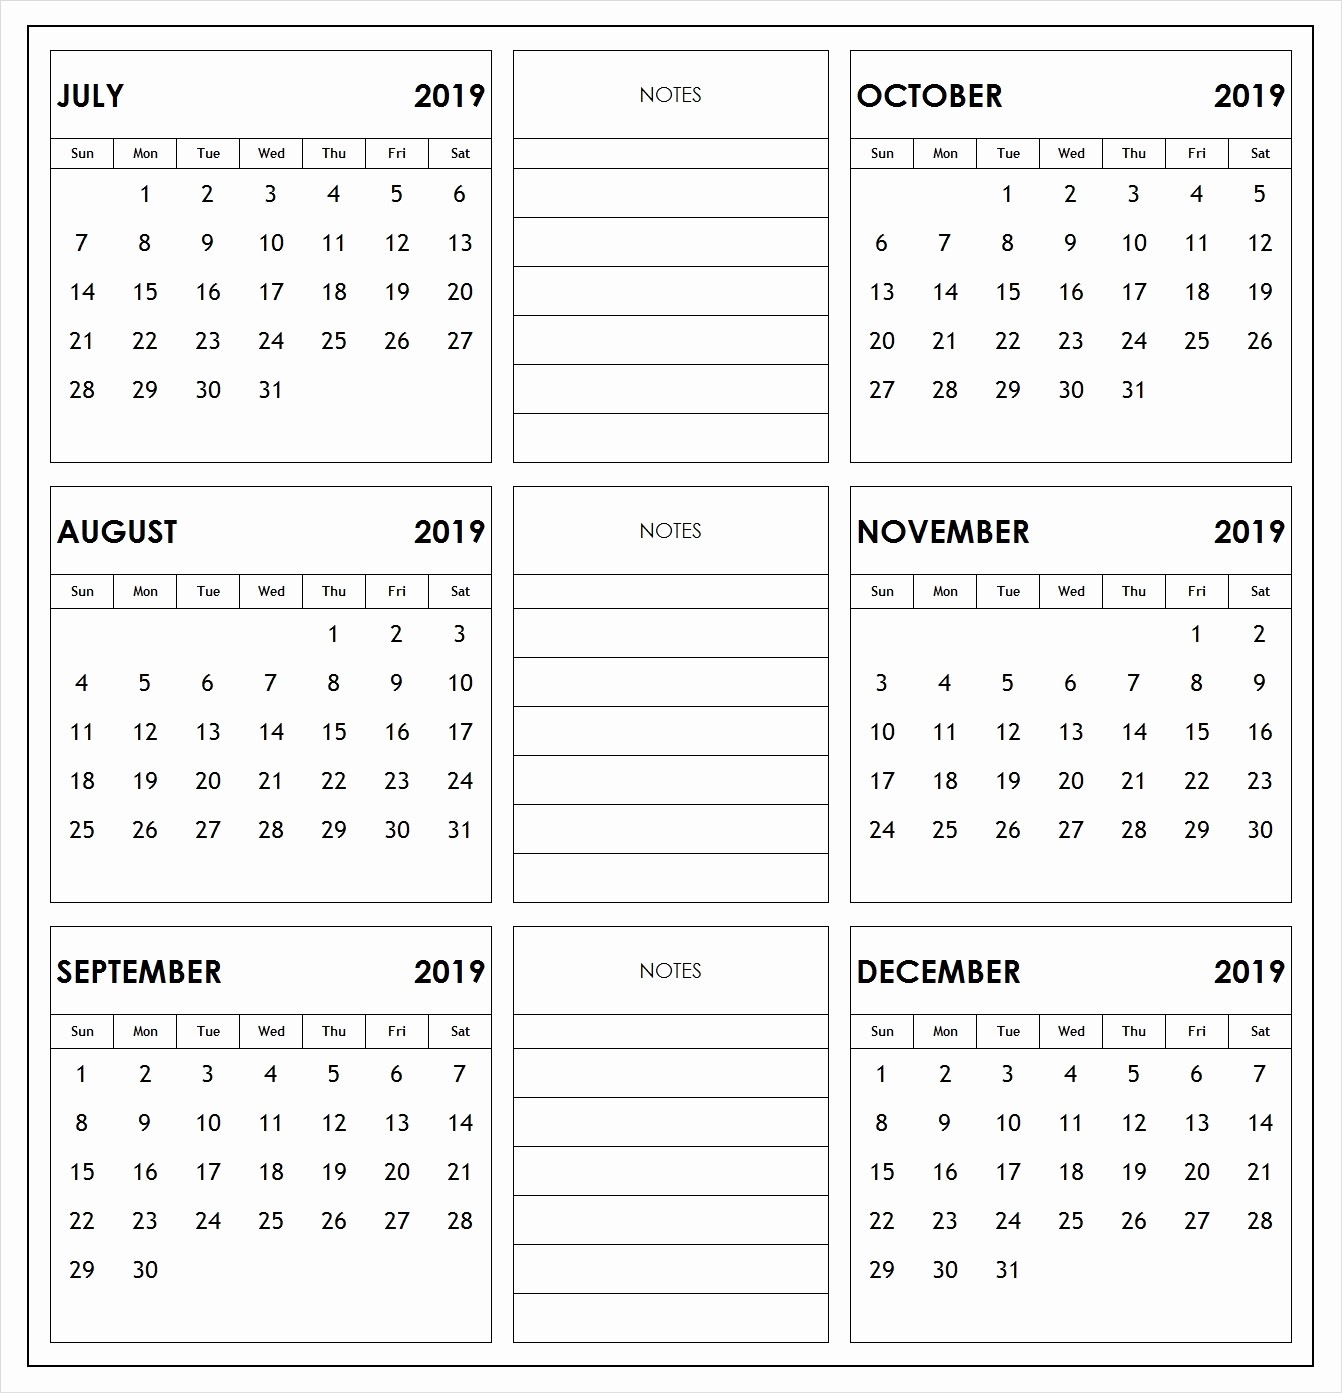 2019 Printable Calendar by Month Elegant 2019 6 Months Half Year Calendar Printable Download